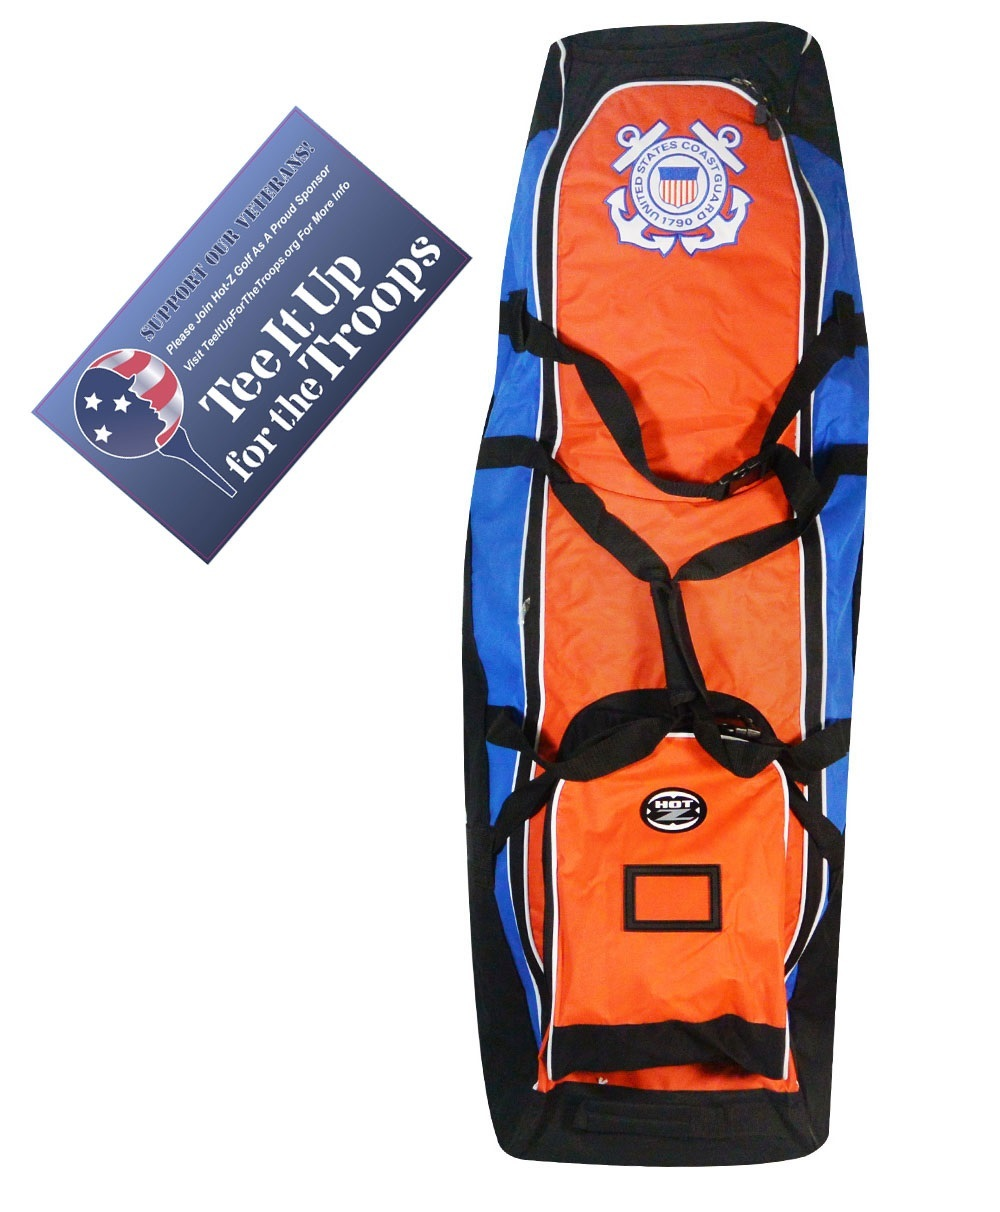 Coast Guard - US Military Travel Cover - Hot-Z Military Golf Bags